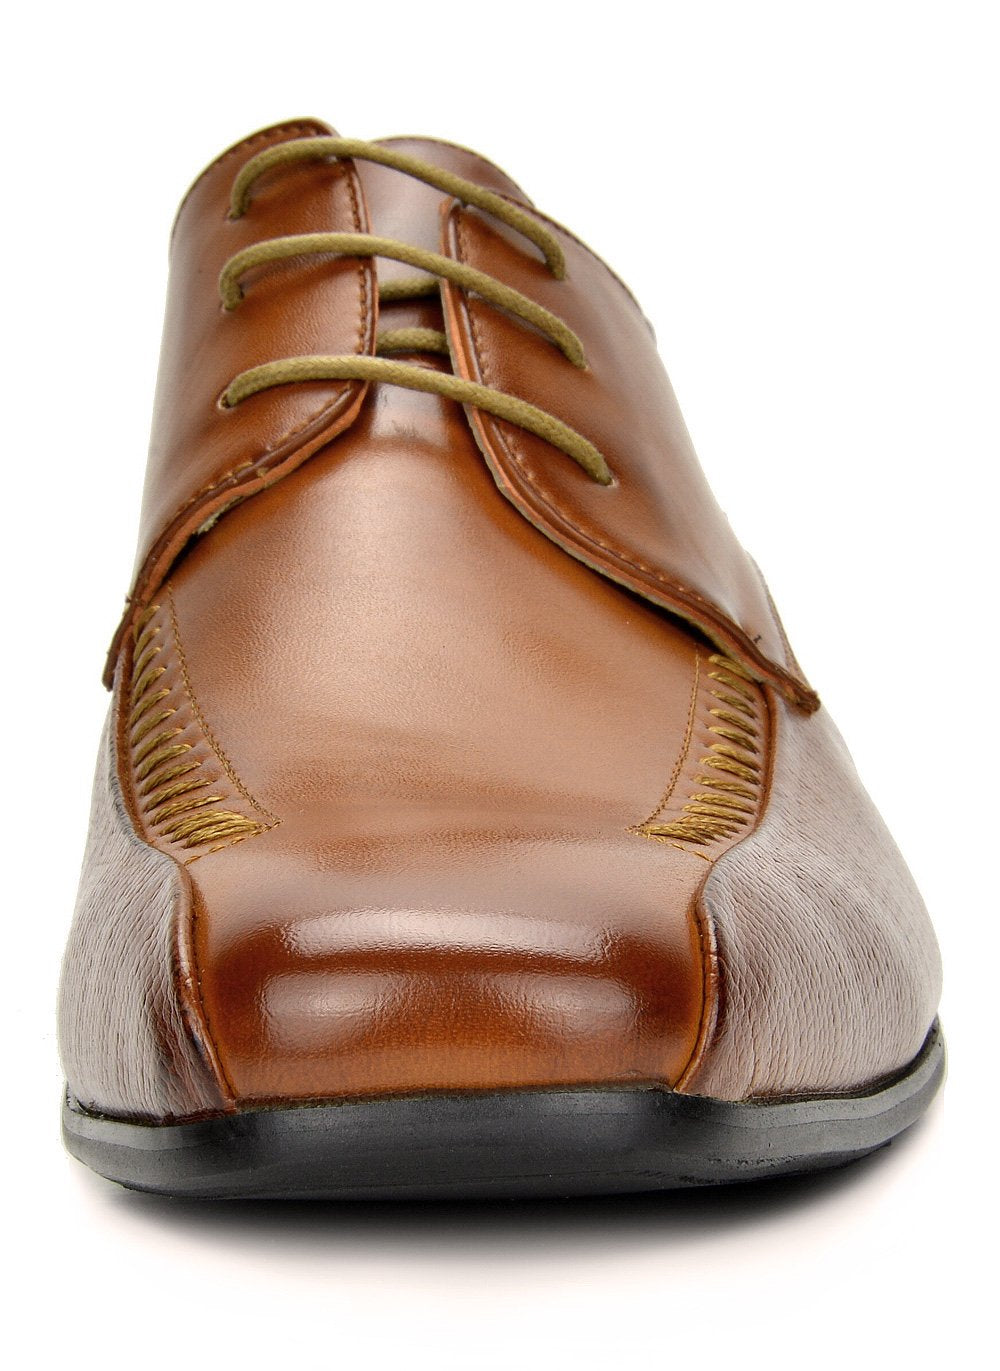 Men's Classic Modern Formal Oxfords Lace Up Leather Lined Snipe Toe- Brown